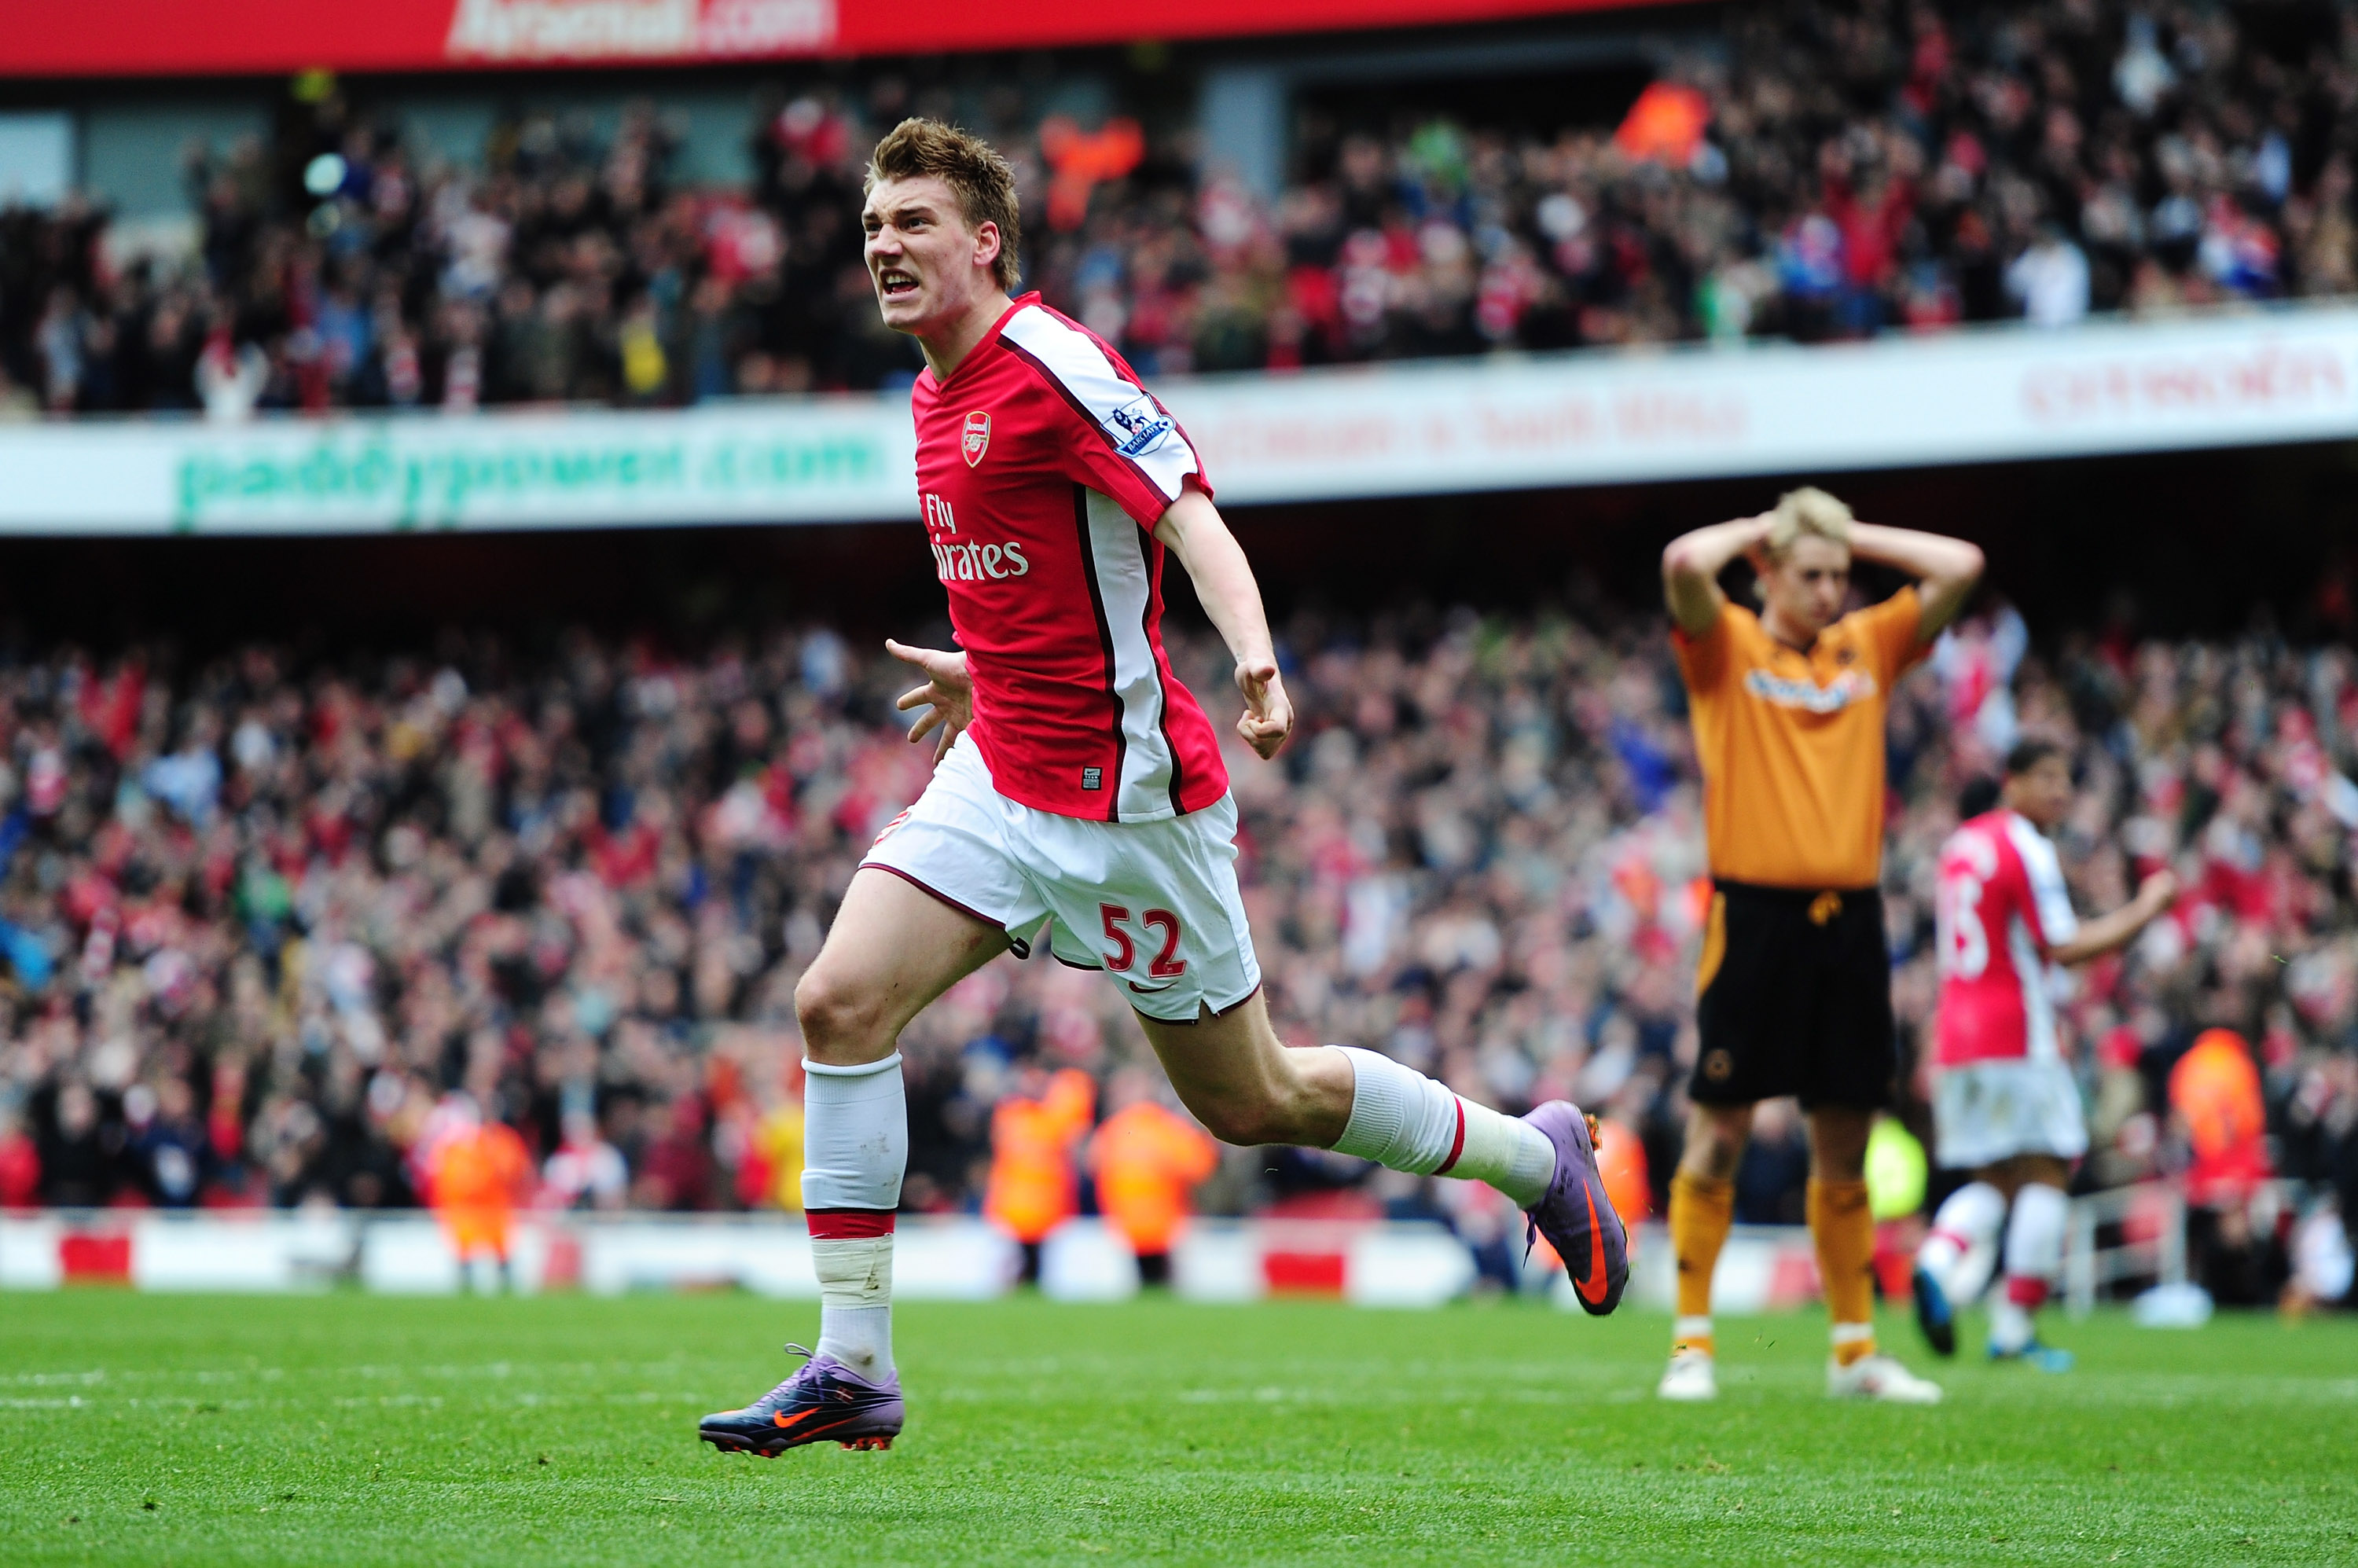 LONDON, ENGLAND - APRIL 03:  Nicklas Bendtner of Arsenal celebrates scoring a late winner during the Barclays Premier League match between Arsenal and Wolverhampton Wanderers at the Emirates Stadium on April 3, 2010 in London, England.  (Photo by Mike Hew